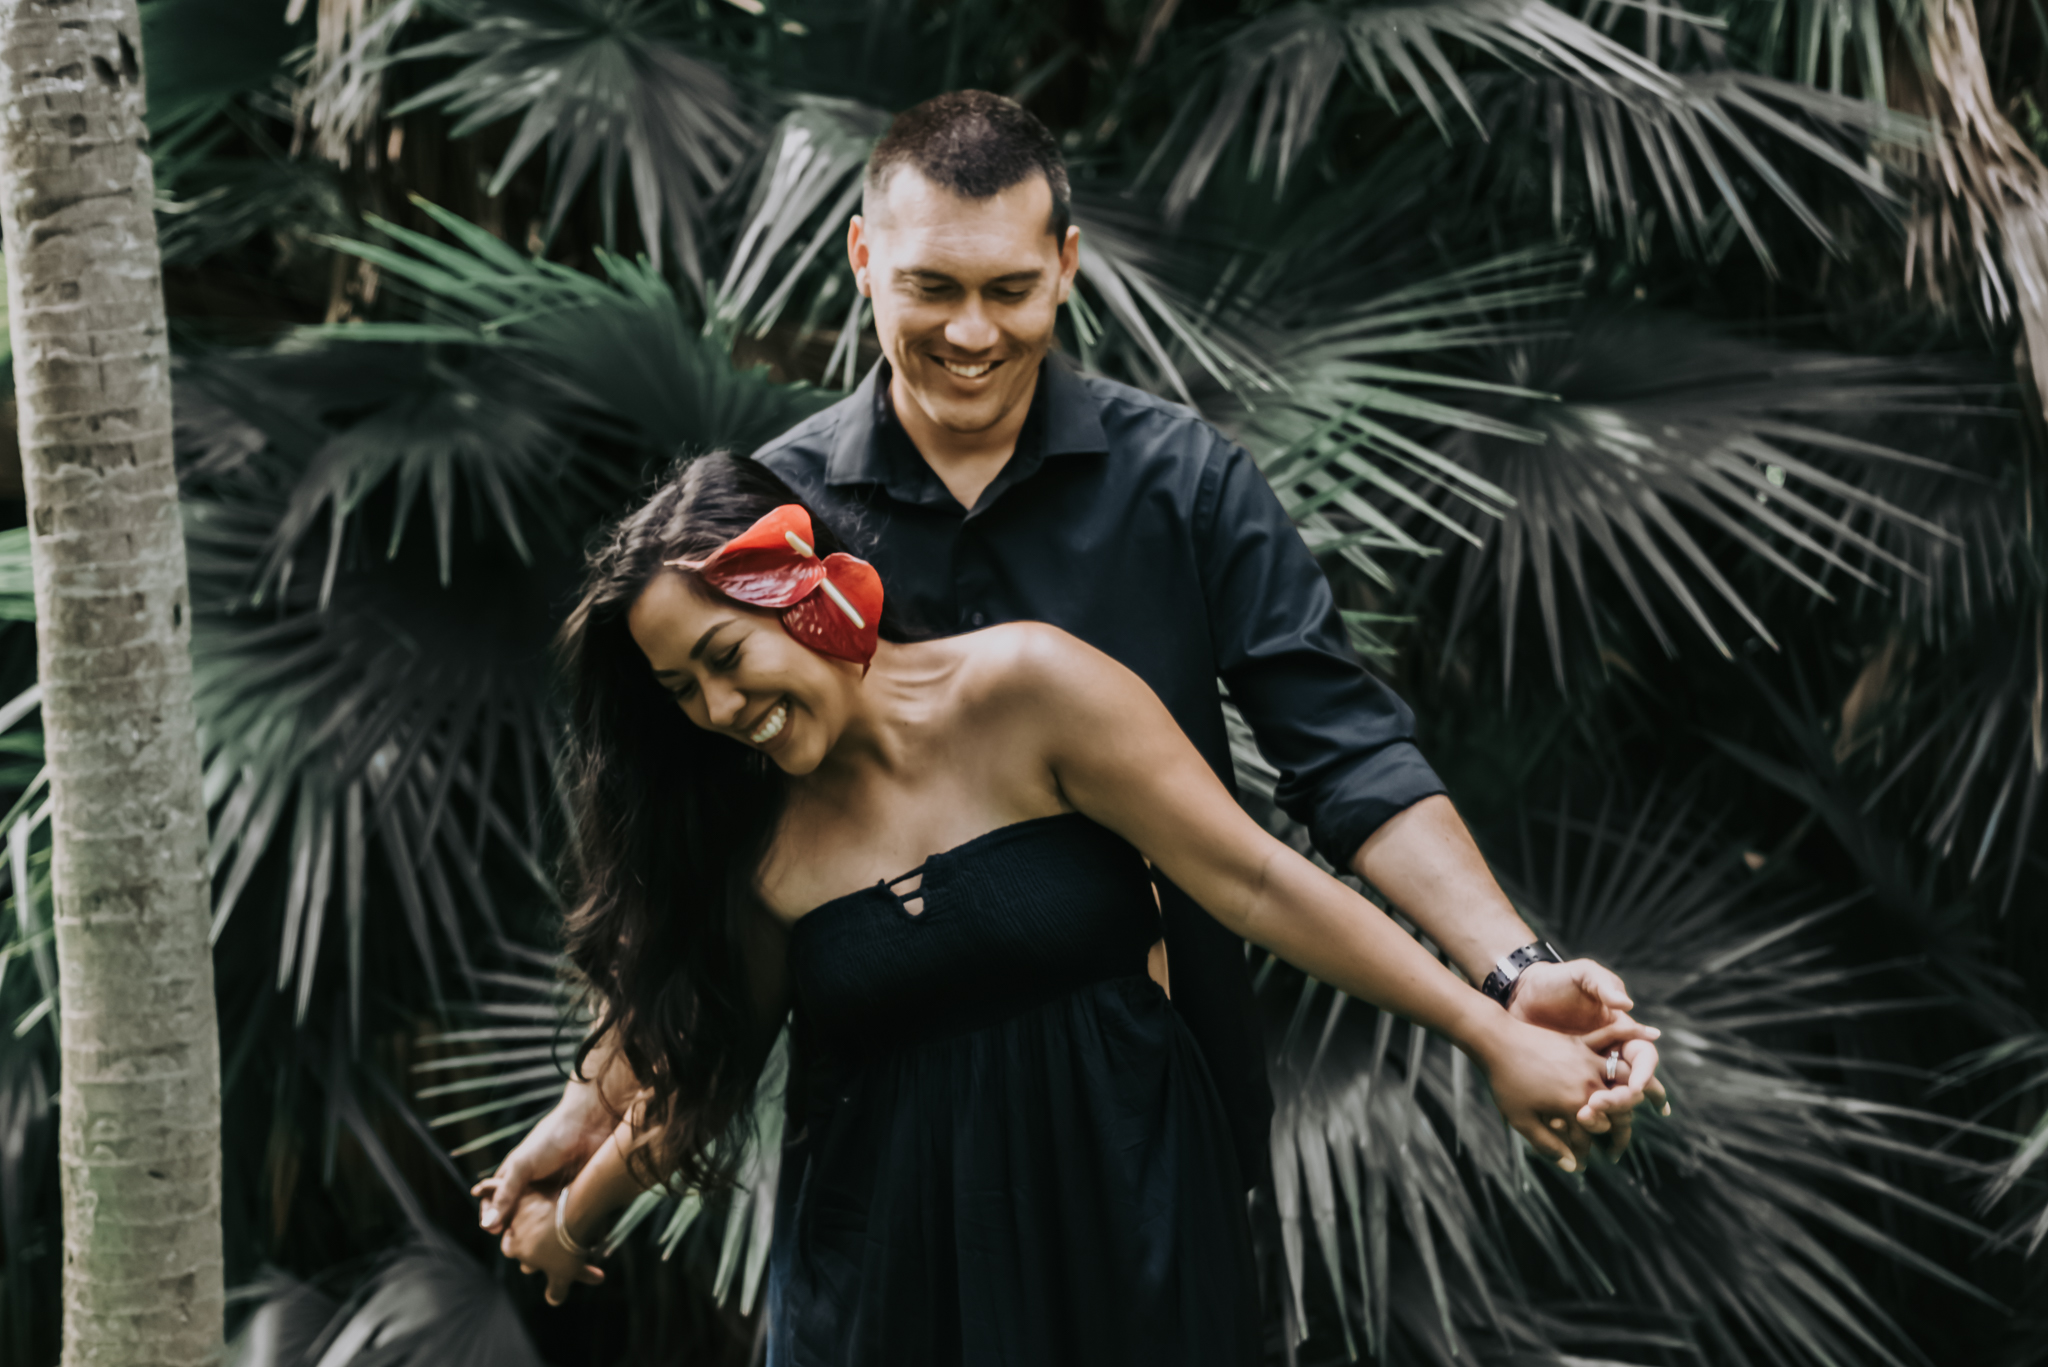 michele + josh | botanical gardens | oahu lifestyle photographer